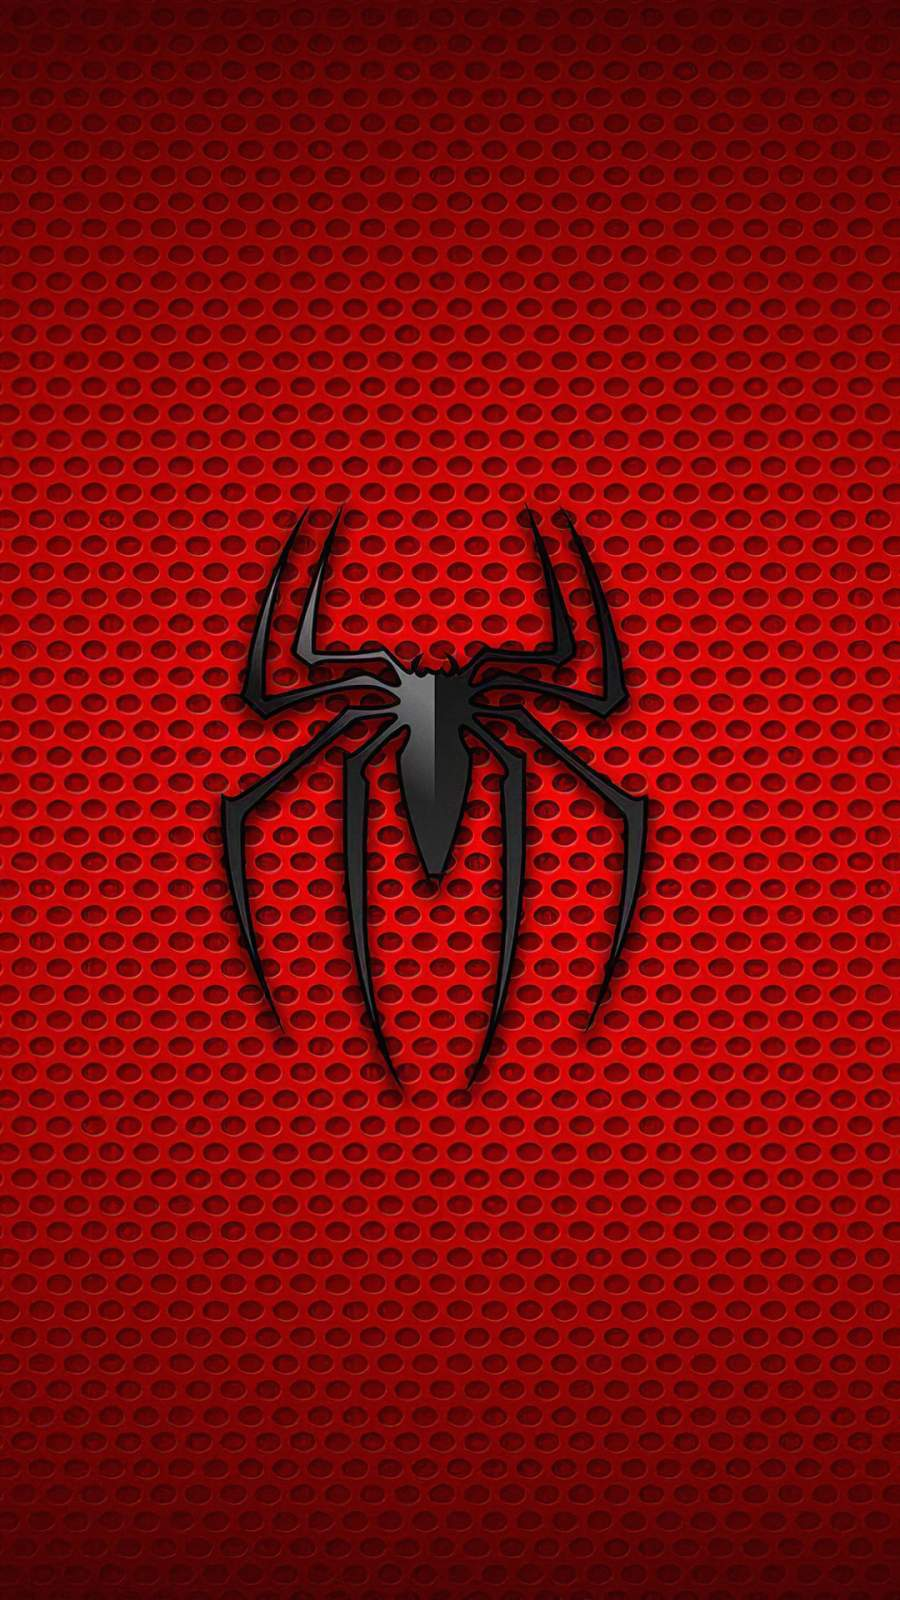 Spiderman Logo Background iPhone Wallpaper